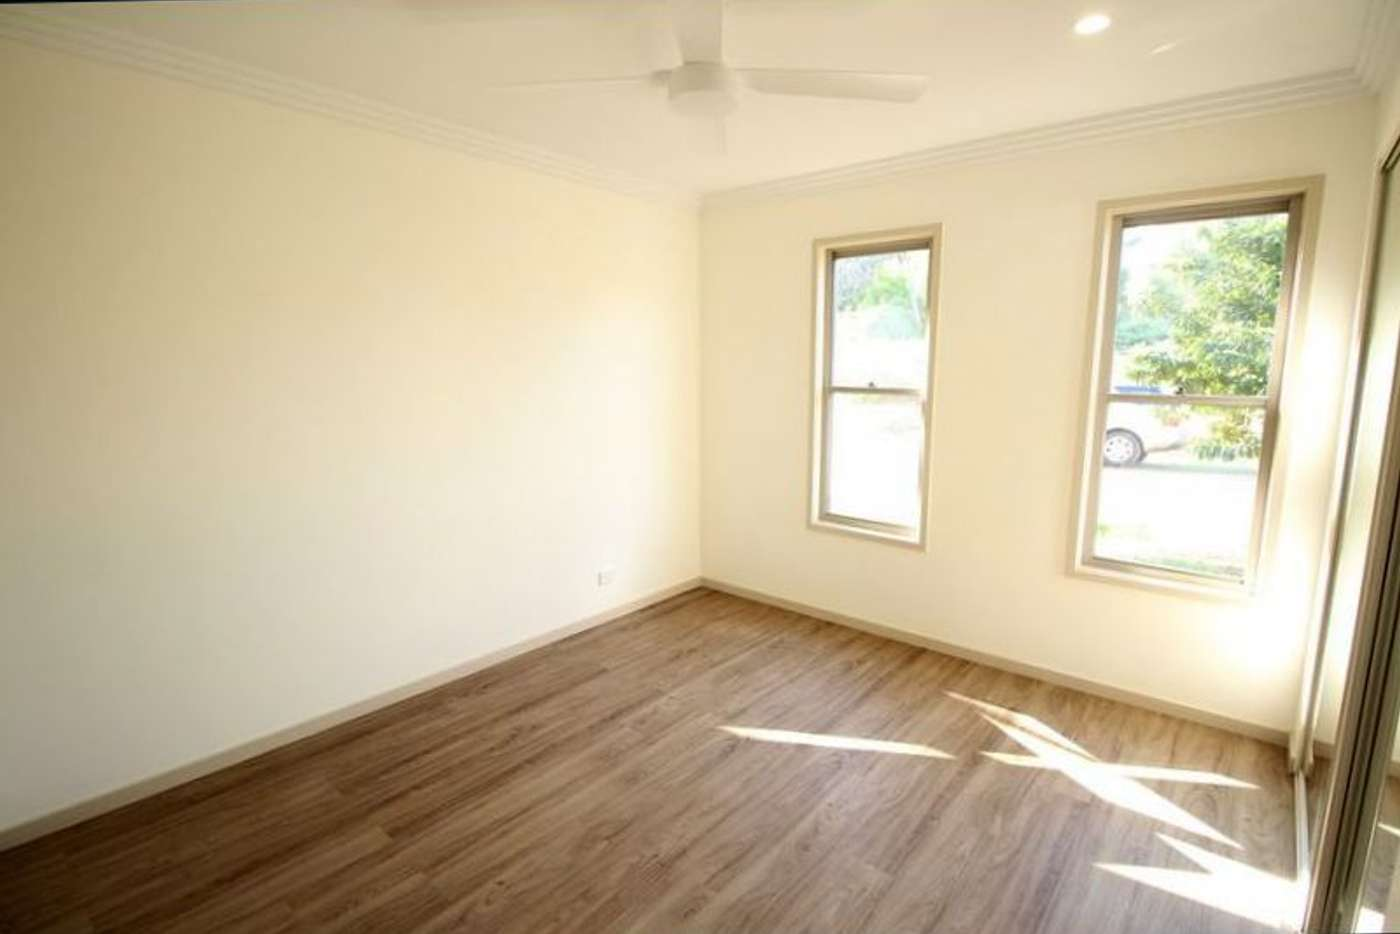 Sixth view of Homely house listing, 6 Allamanda Avenue, Russell Island QLD 4184